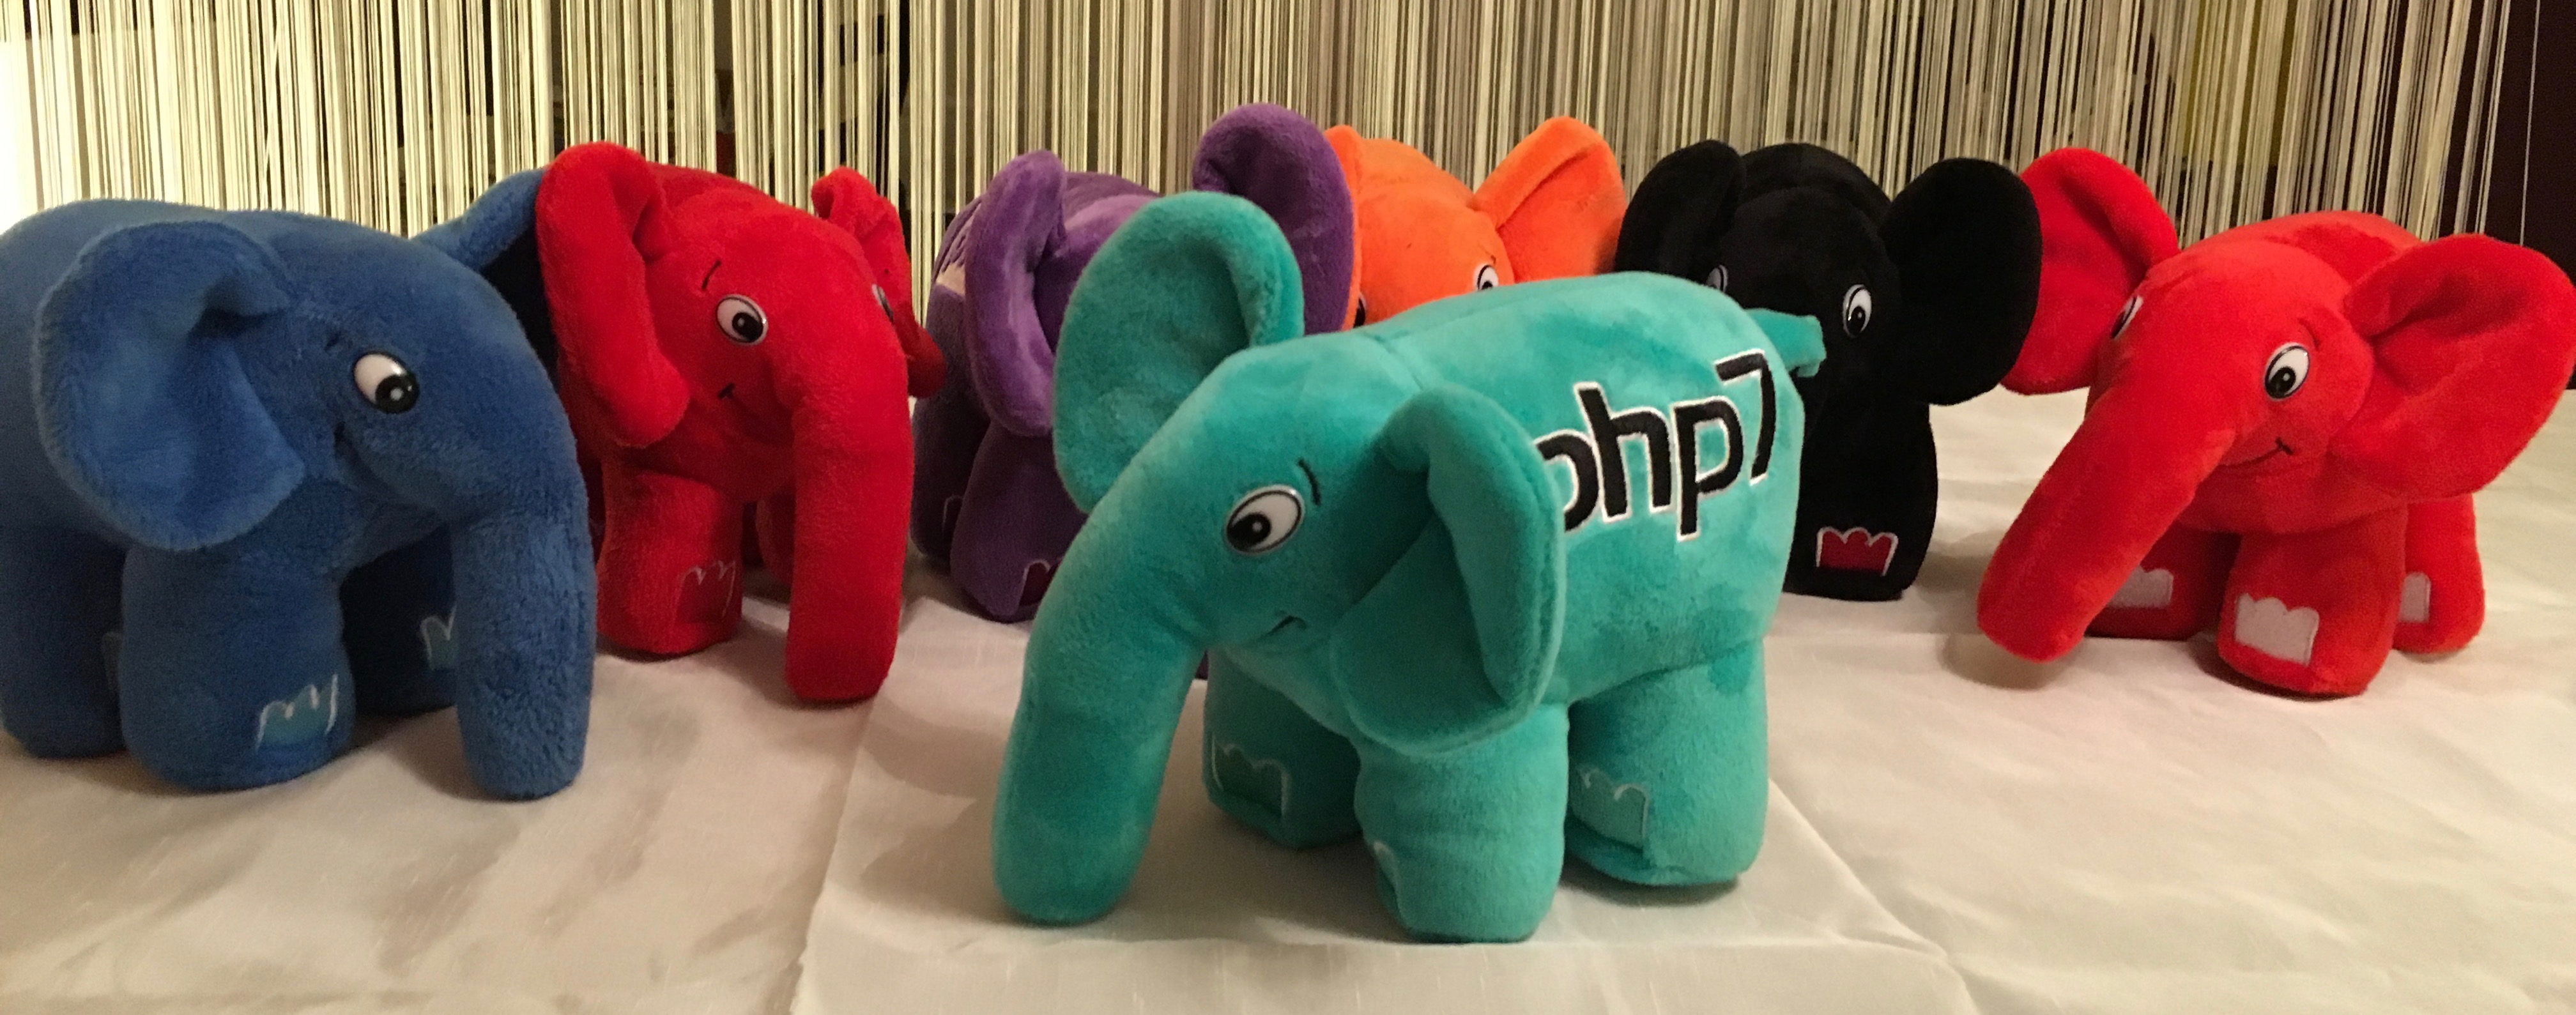 elephpants PHP7